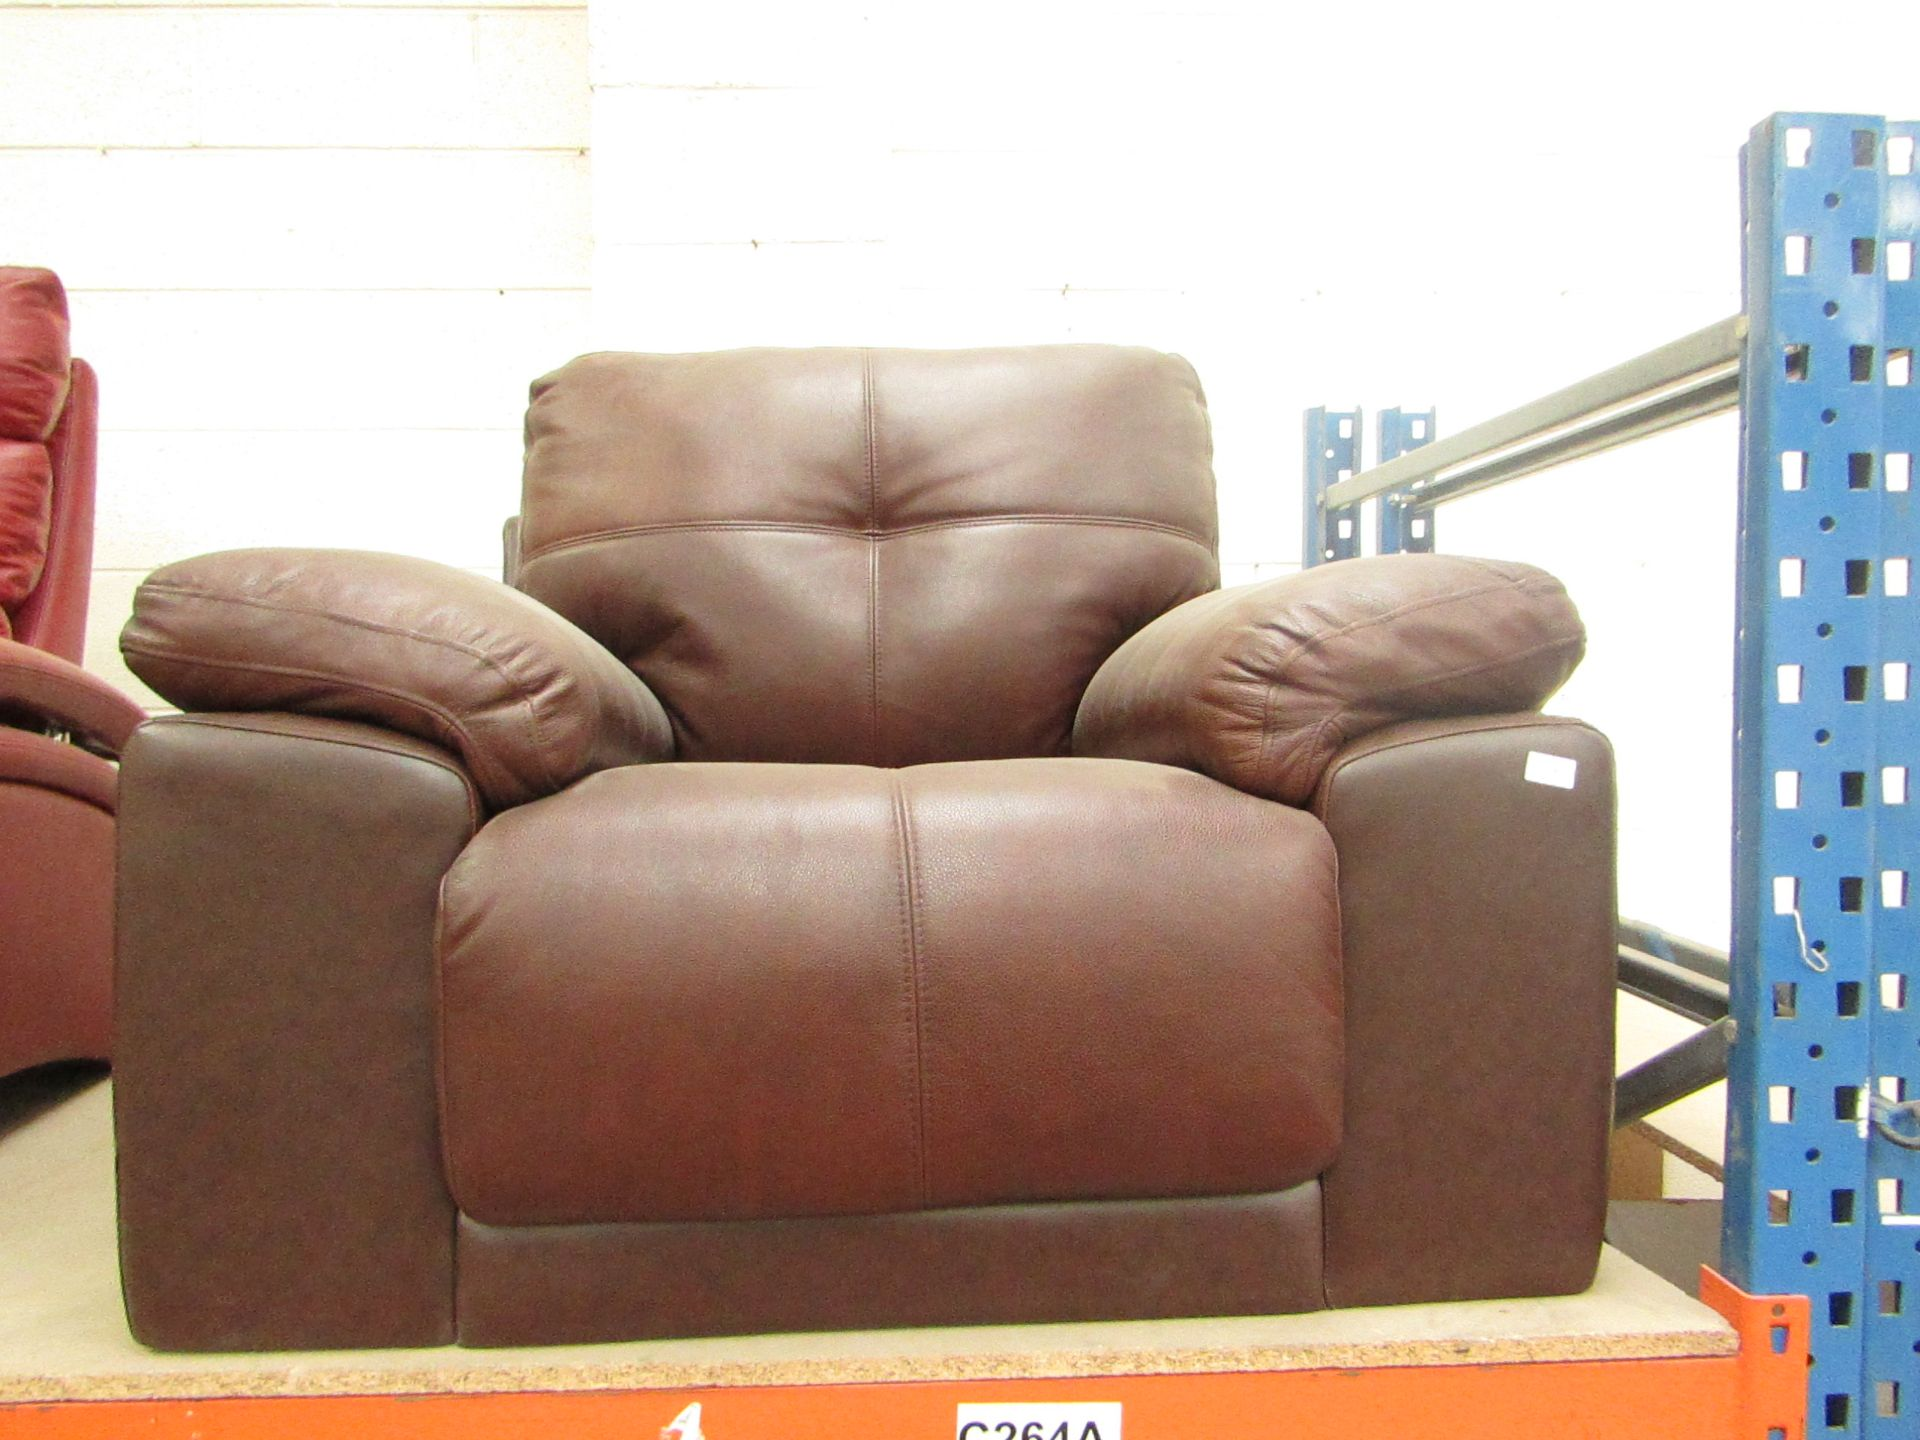 Lot 9 - Abbyson Furniture leather armchair